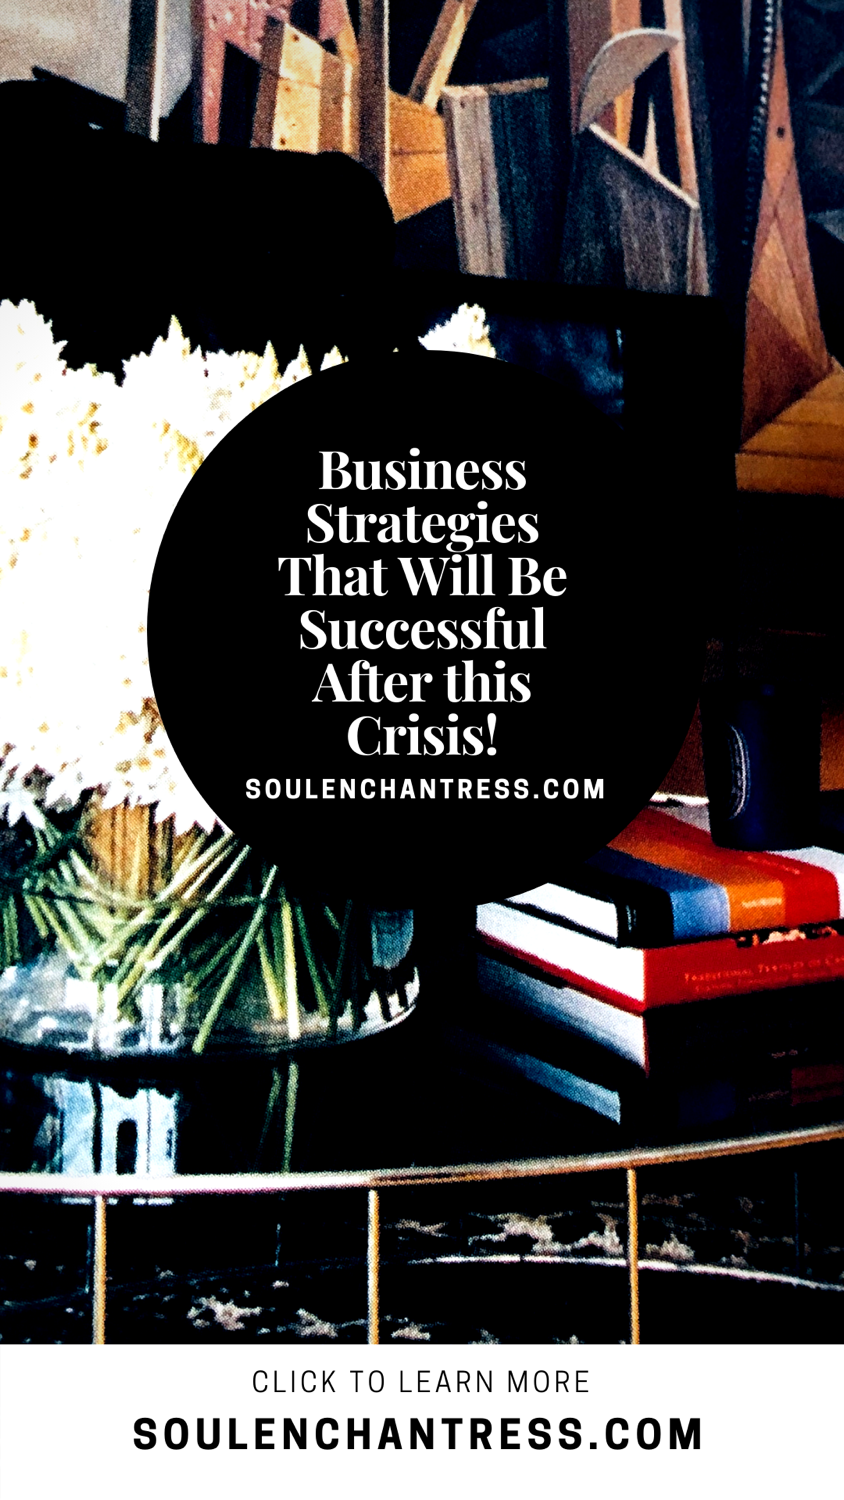 business stratgeis for success after this crisis, soul enchantress, money, business, entrepreneurs